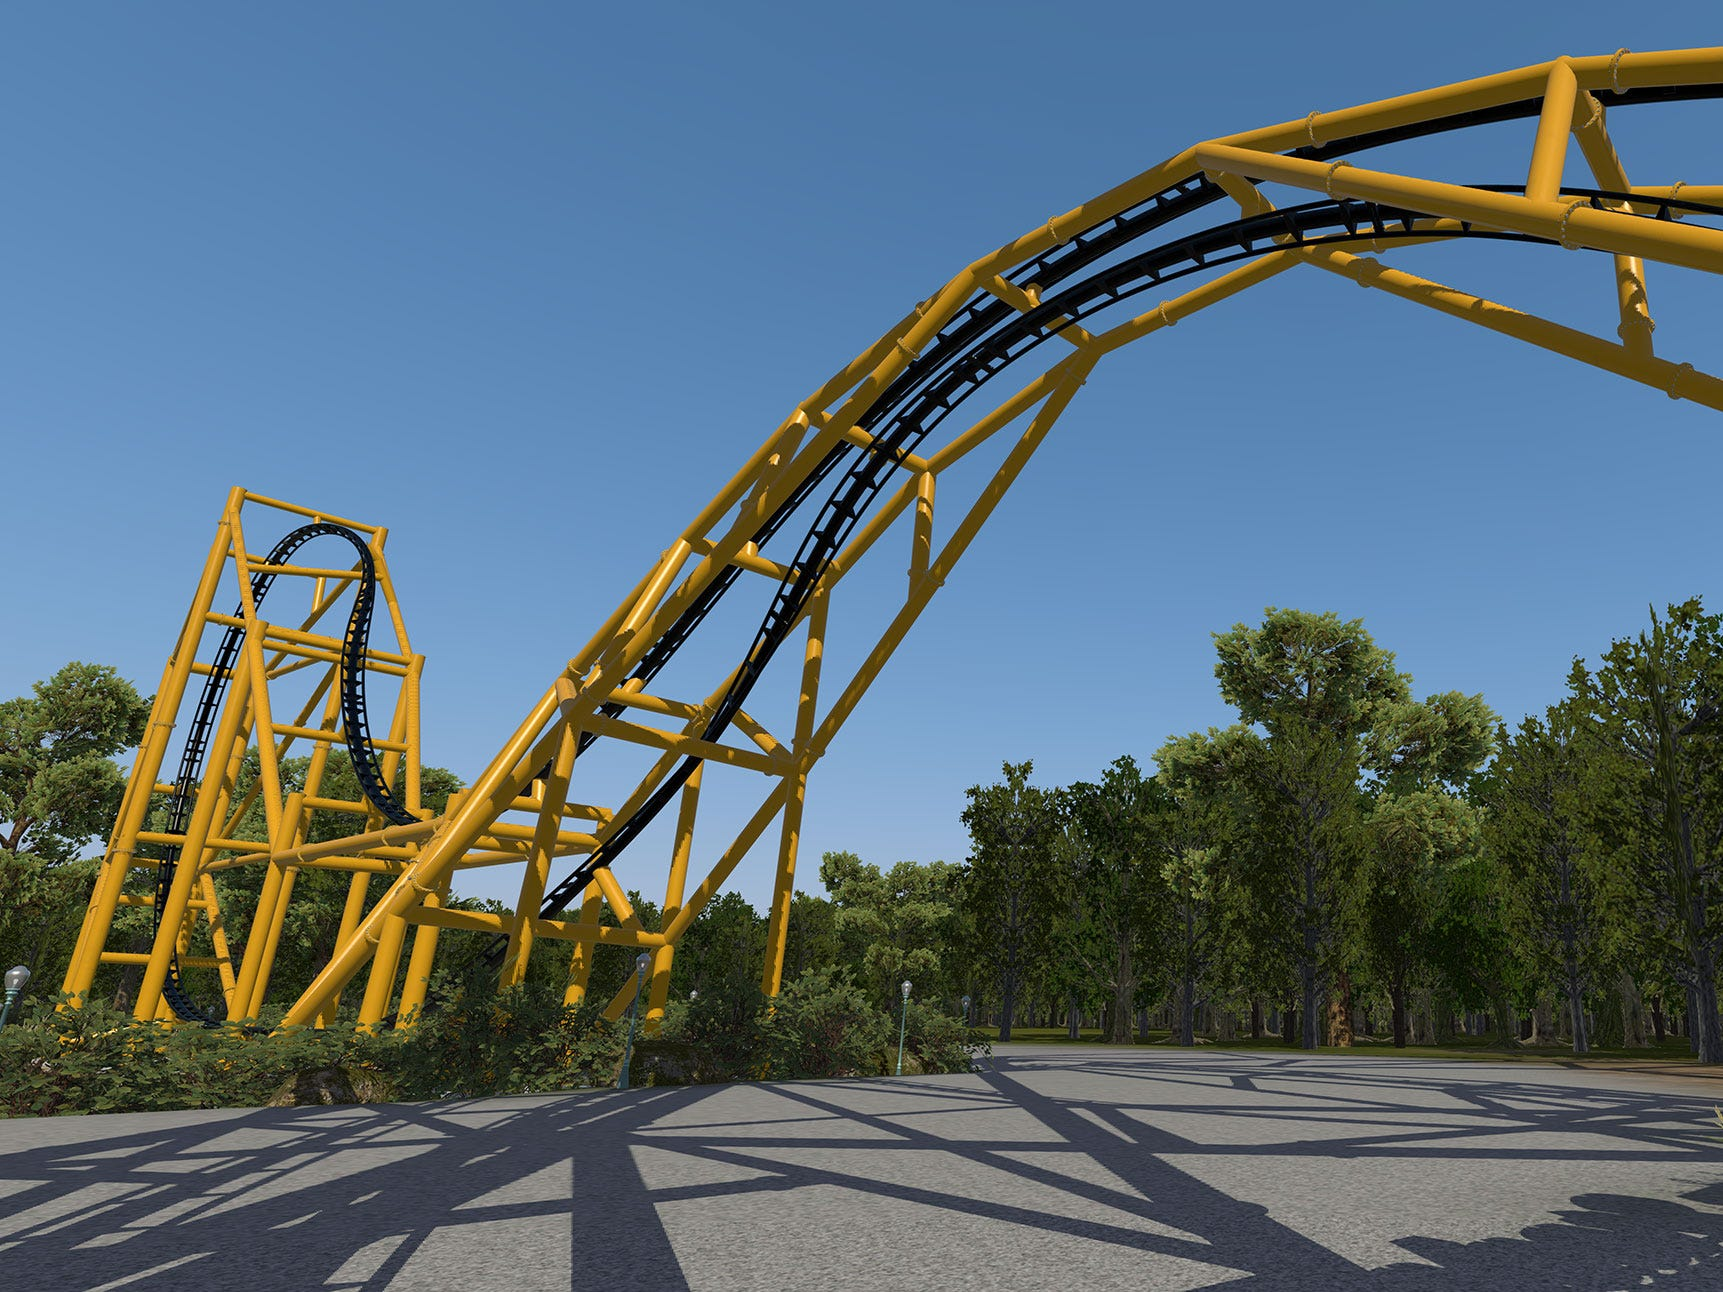 Steel Curtain's most notable features (other than its tie-in with the Men of Steel) will be its inversions.